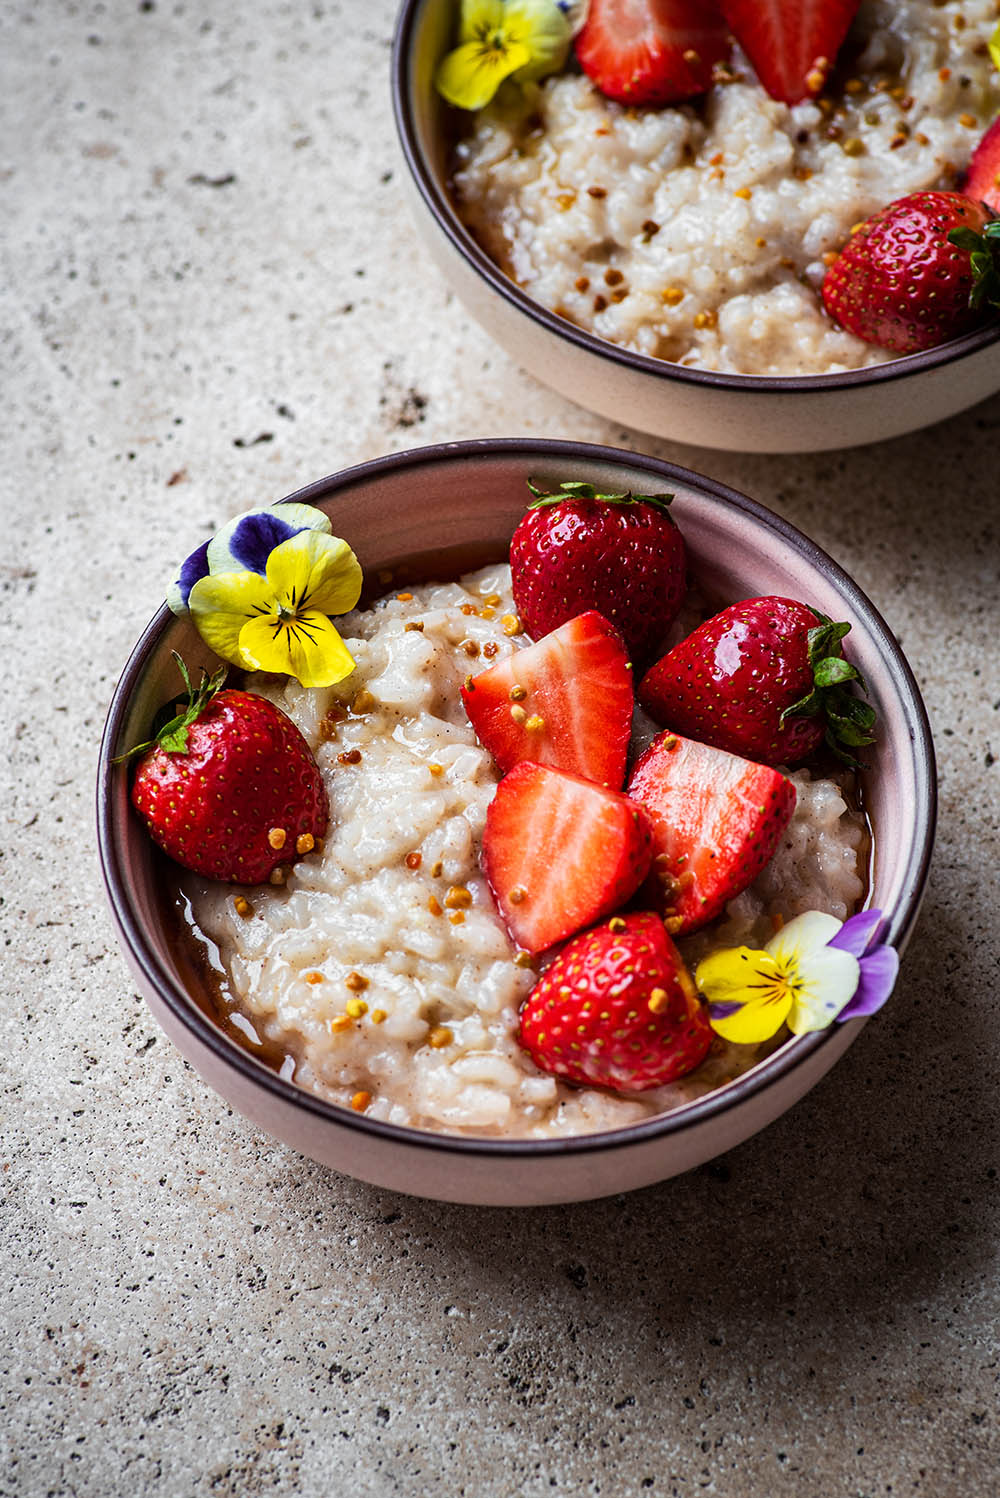 Two small bowls of rice pudding topped with strawberries.